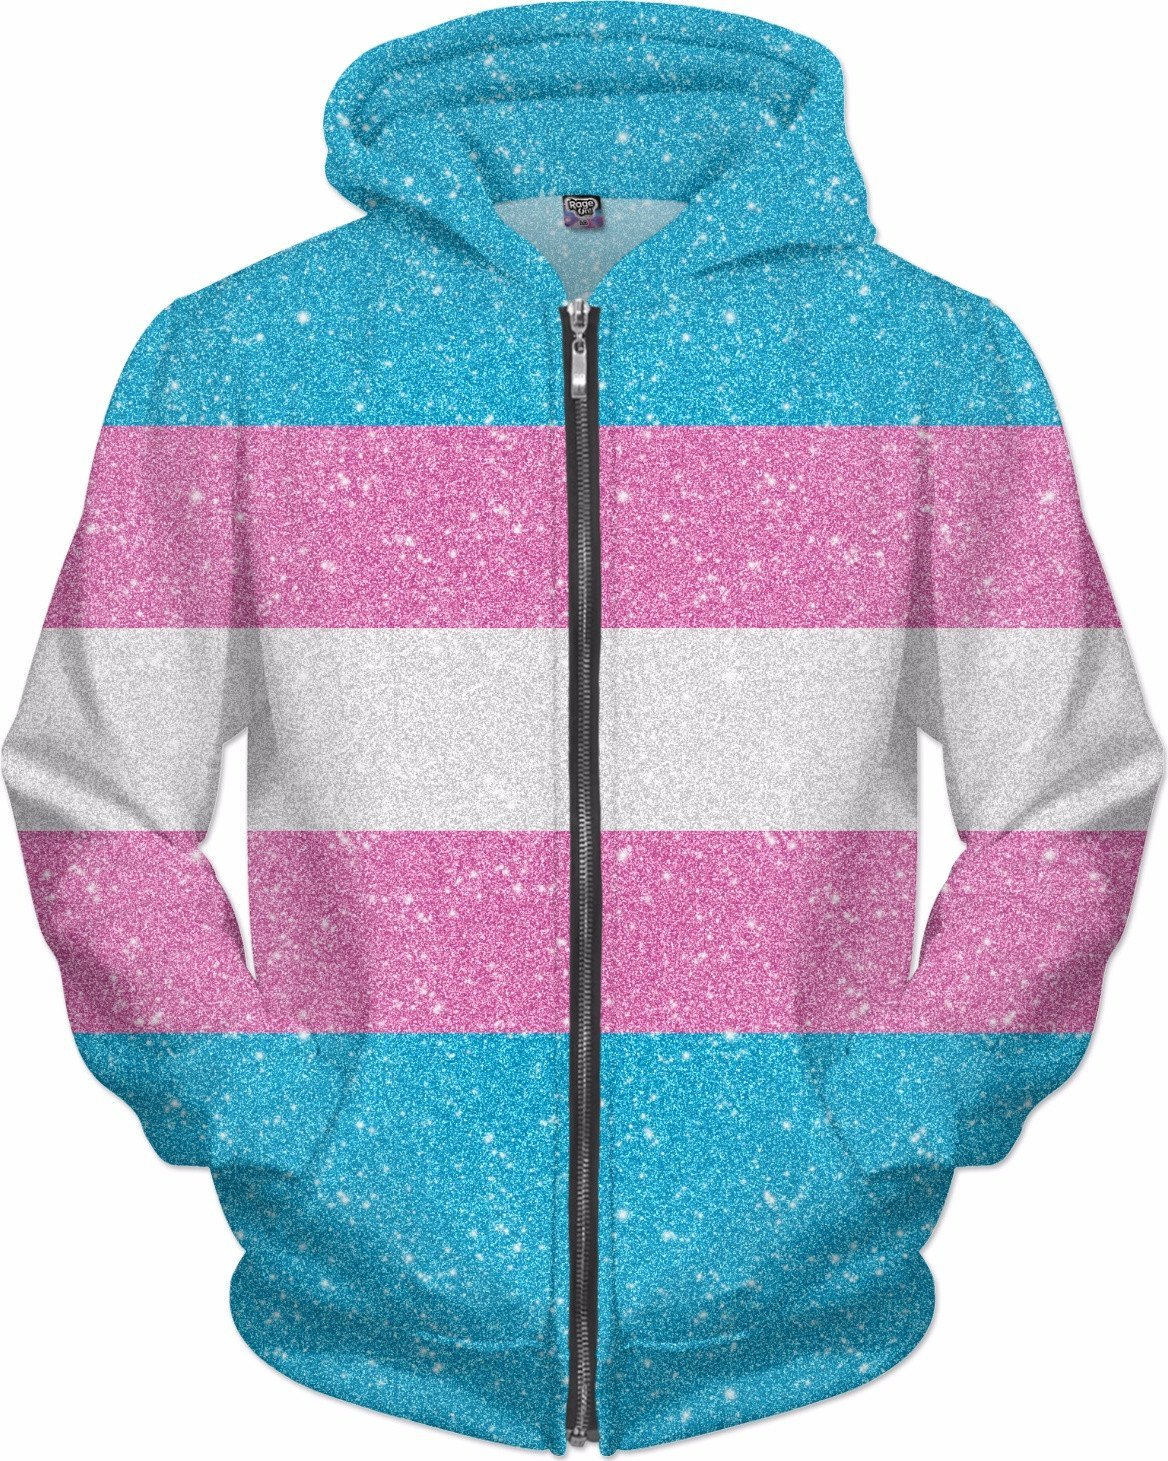 c6d58a733 Glitter Transgender Pride Flag Pansexual Pride, Transgender Girls, Pride  Flag, Equality, Lgbt